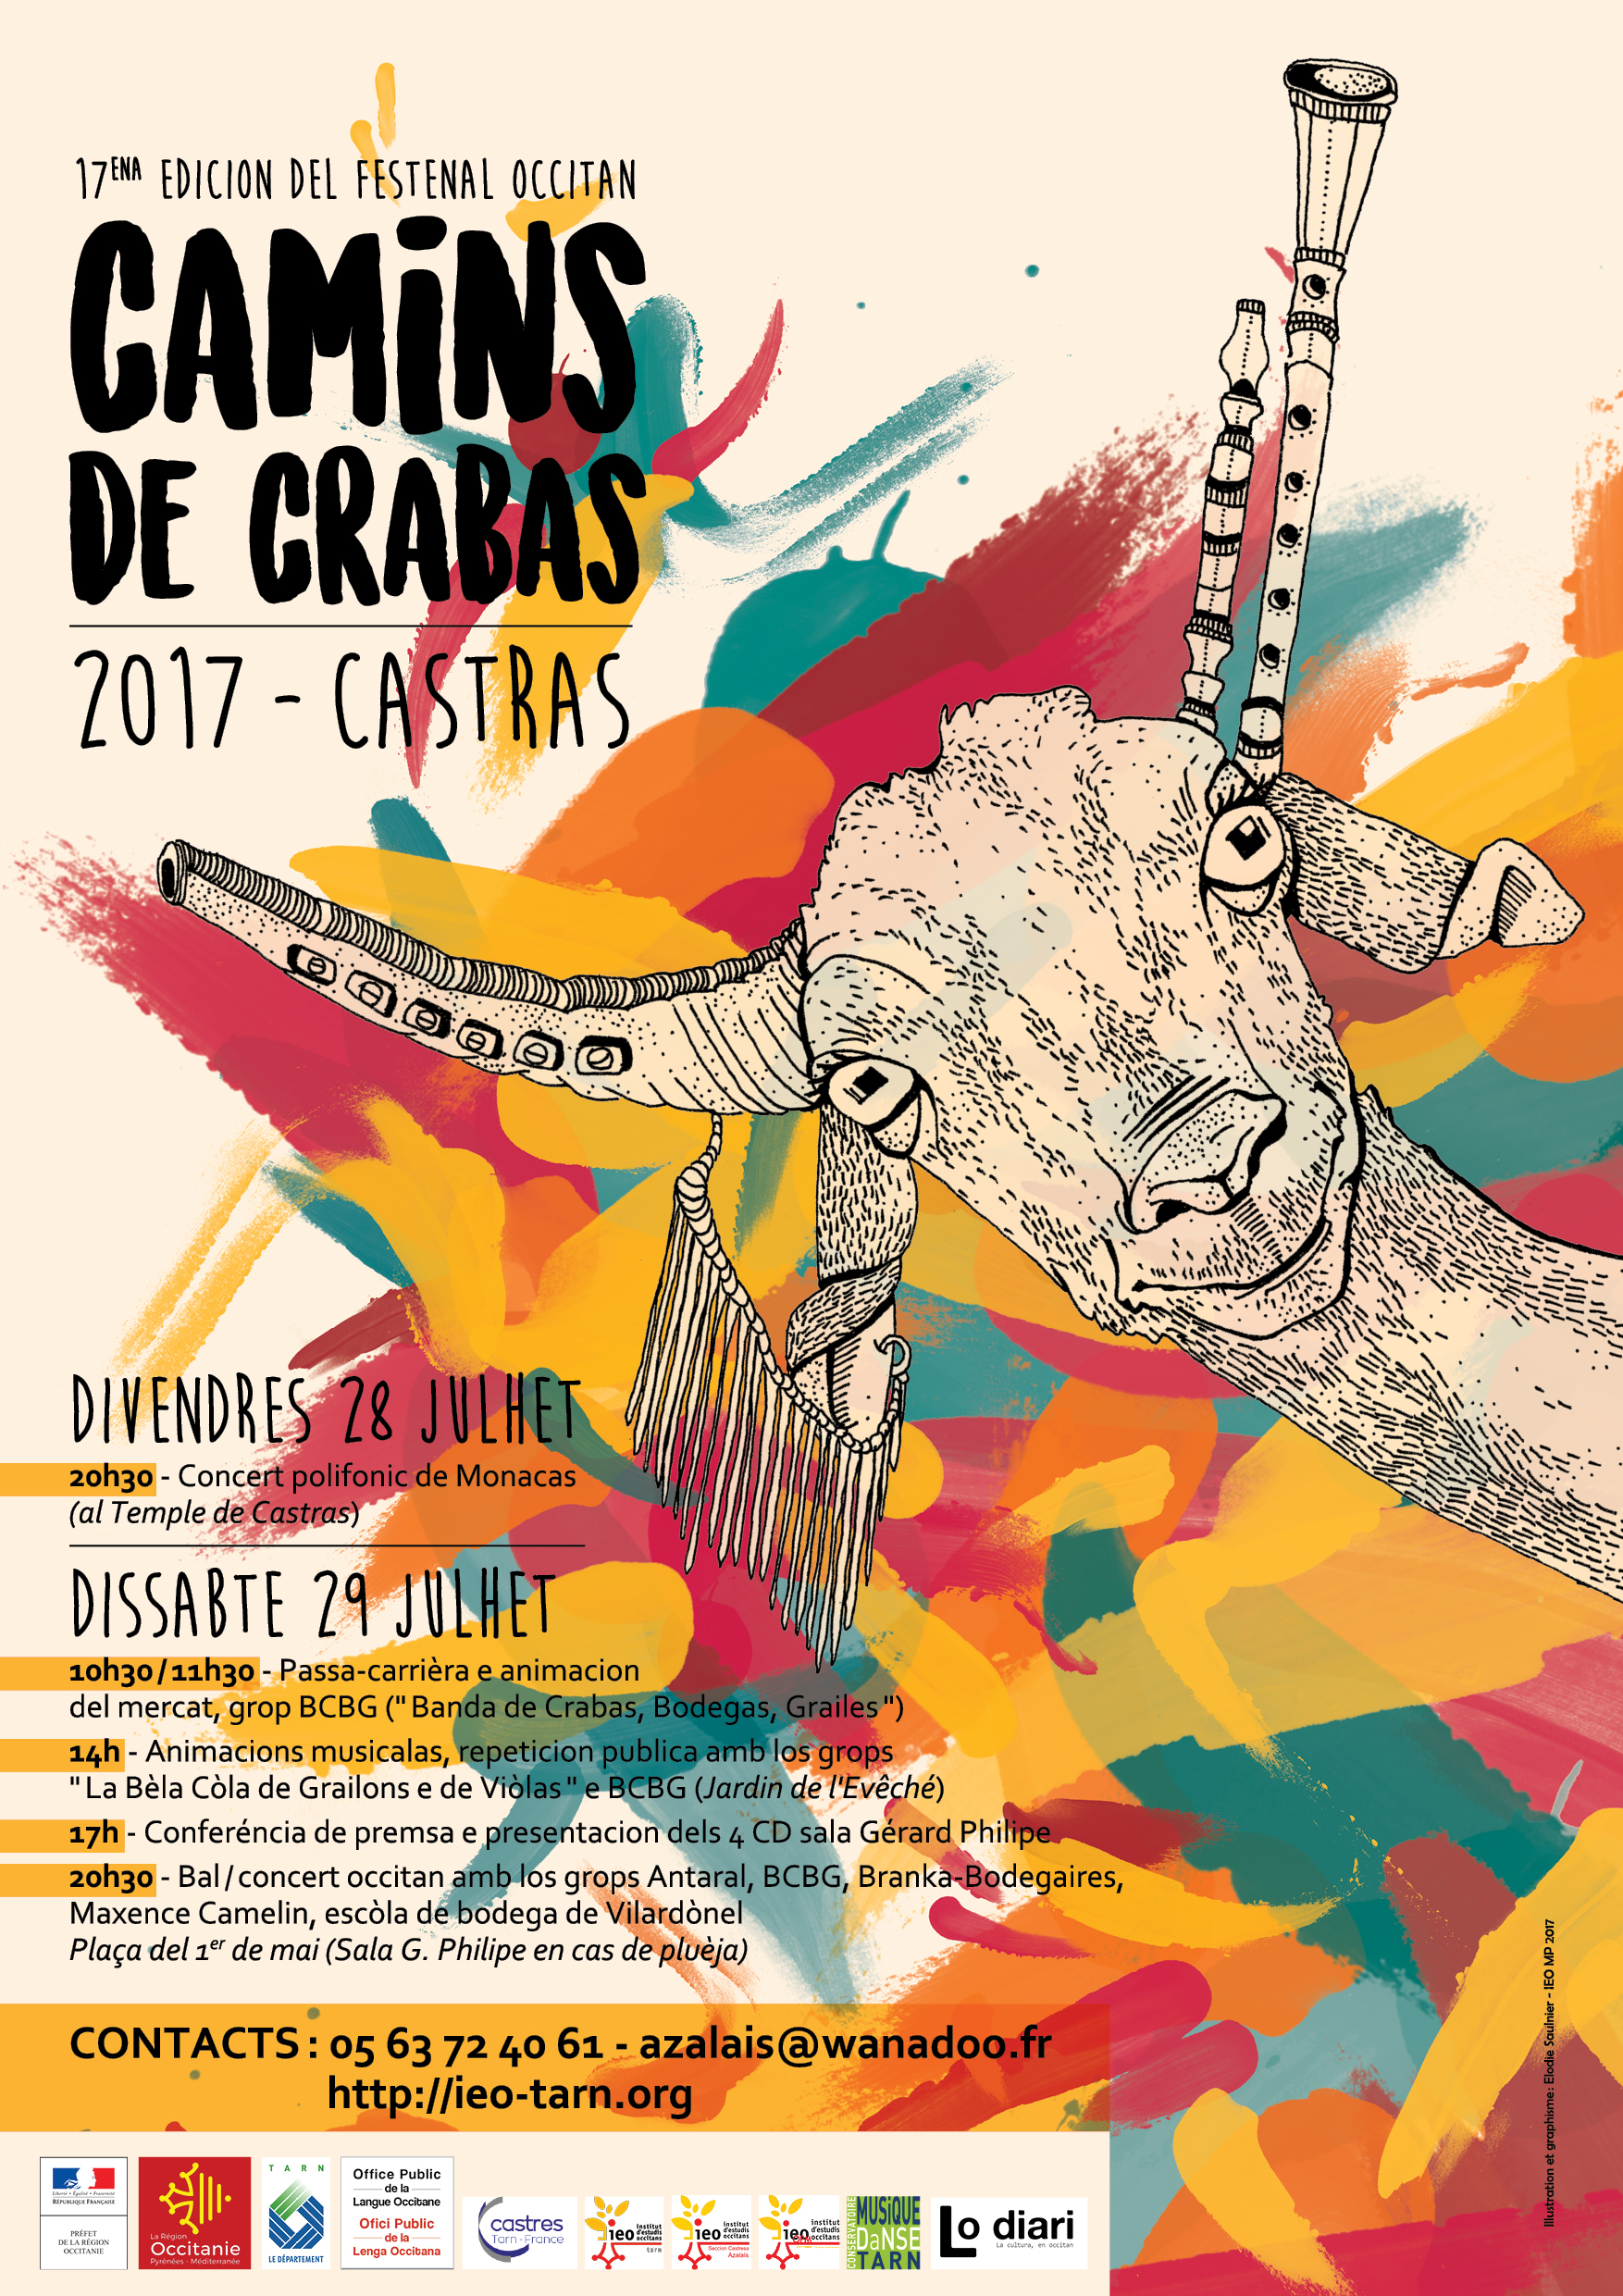 http://www.ieo-tarn.org/ieo/images/stories/Animations/Craba/17_cdc_affa3_crabas2017_v1_20170627_definitif.jpg